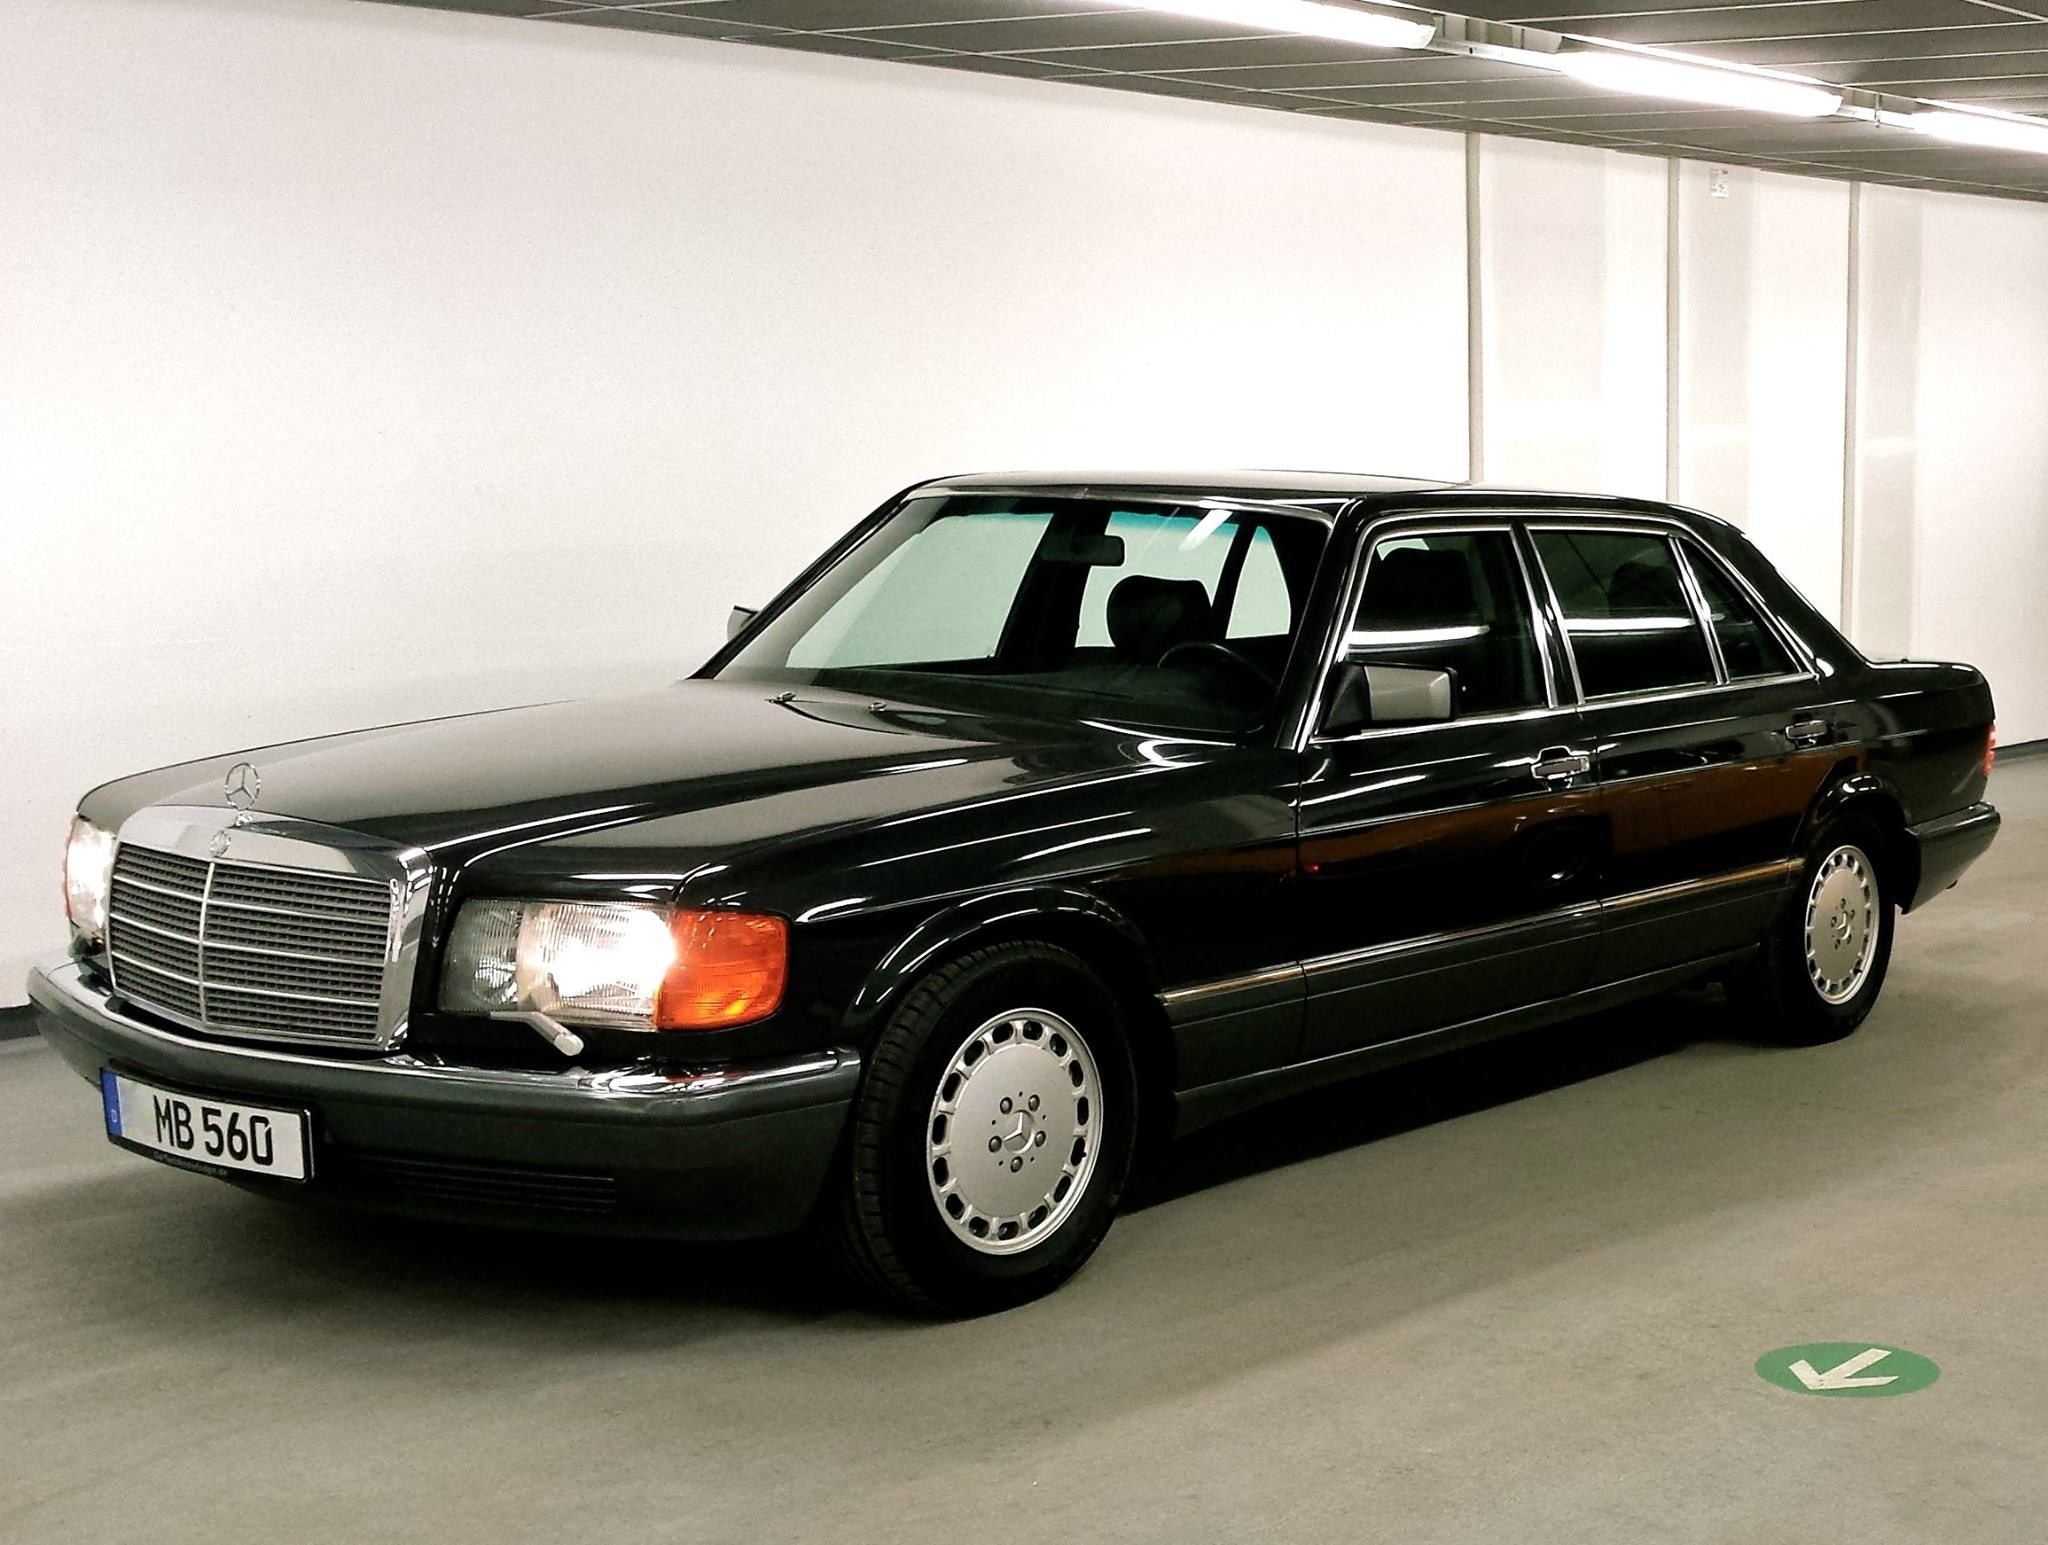 Mercedes Benz W 126 Mercedes Benz Classic Mercedes Benz Cars Mercedes Benz Maybach